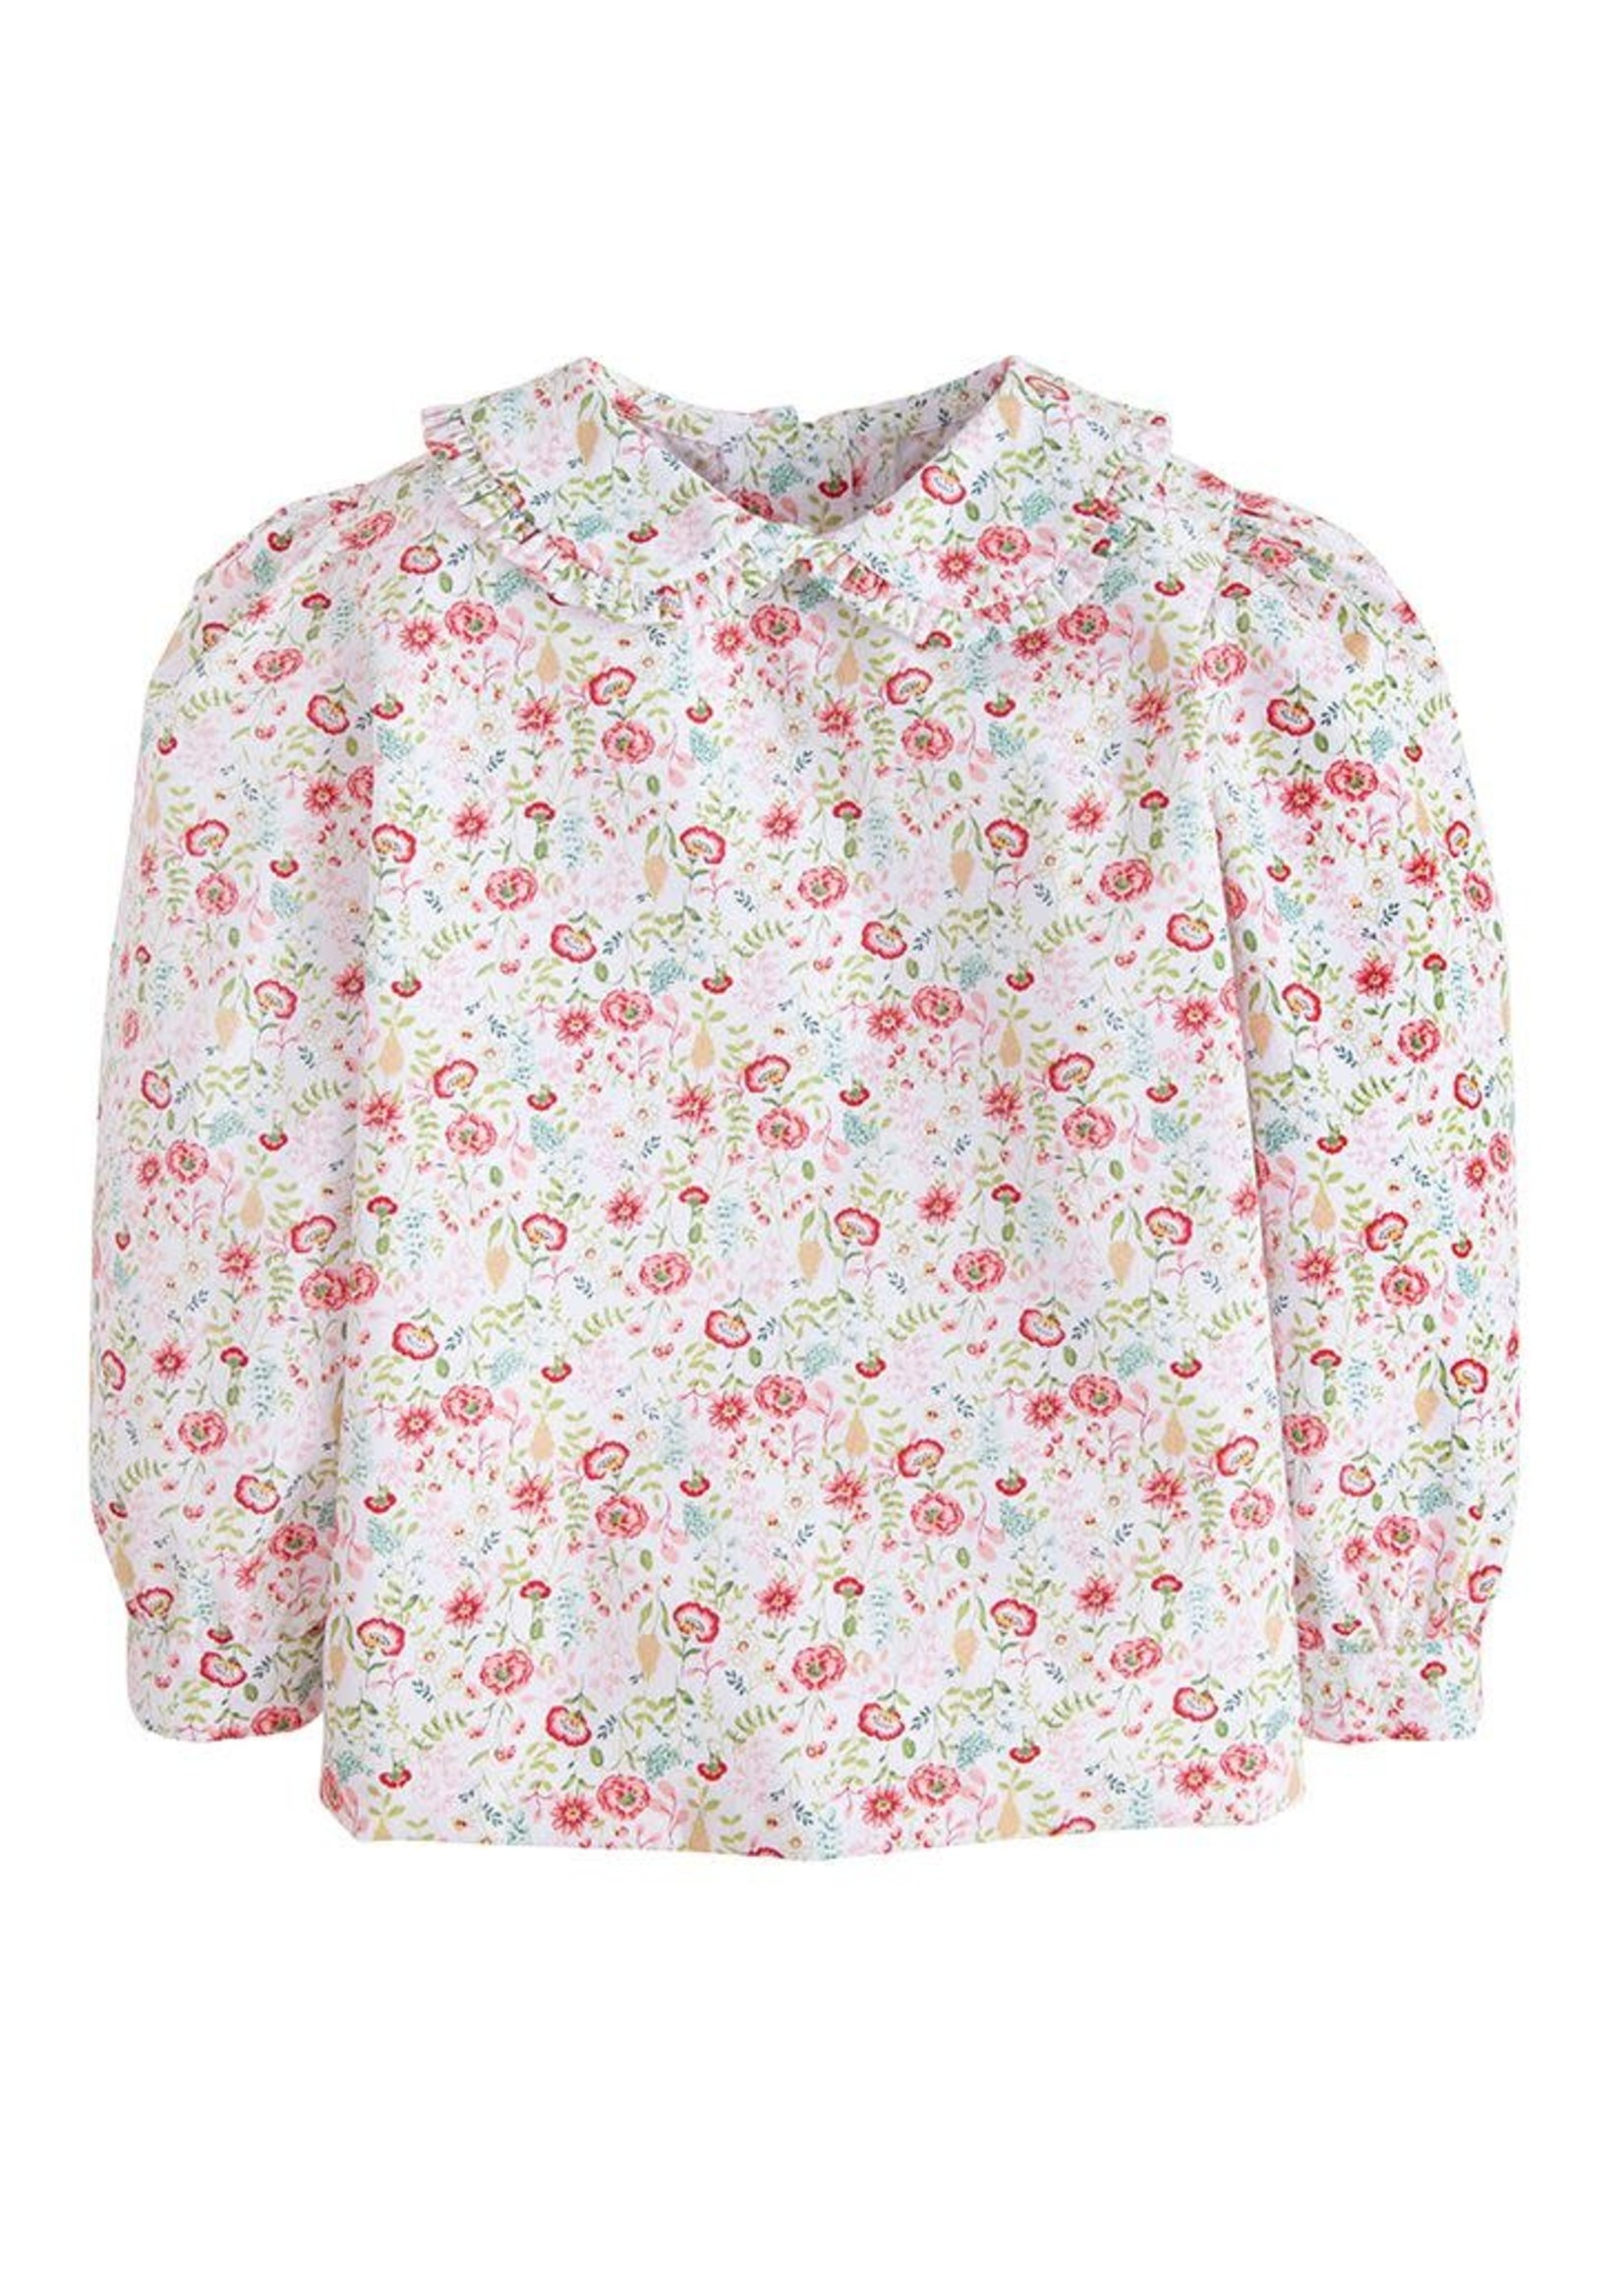 Little English Ruffled Peter Pan Blouse - Midway Floral